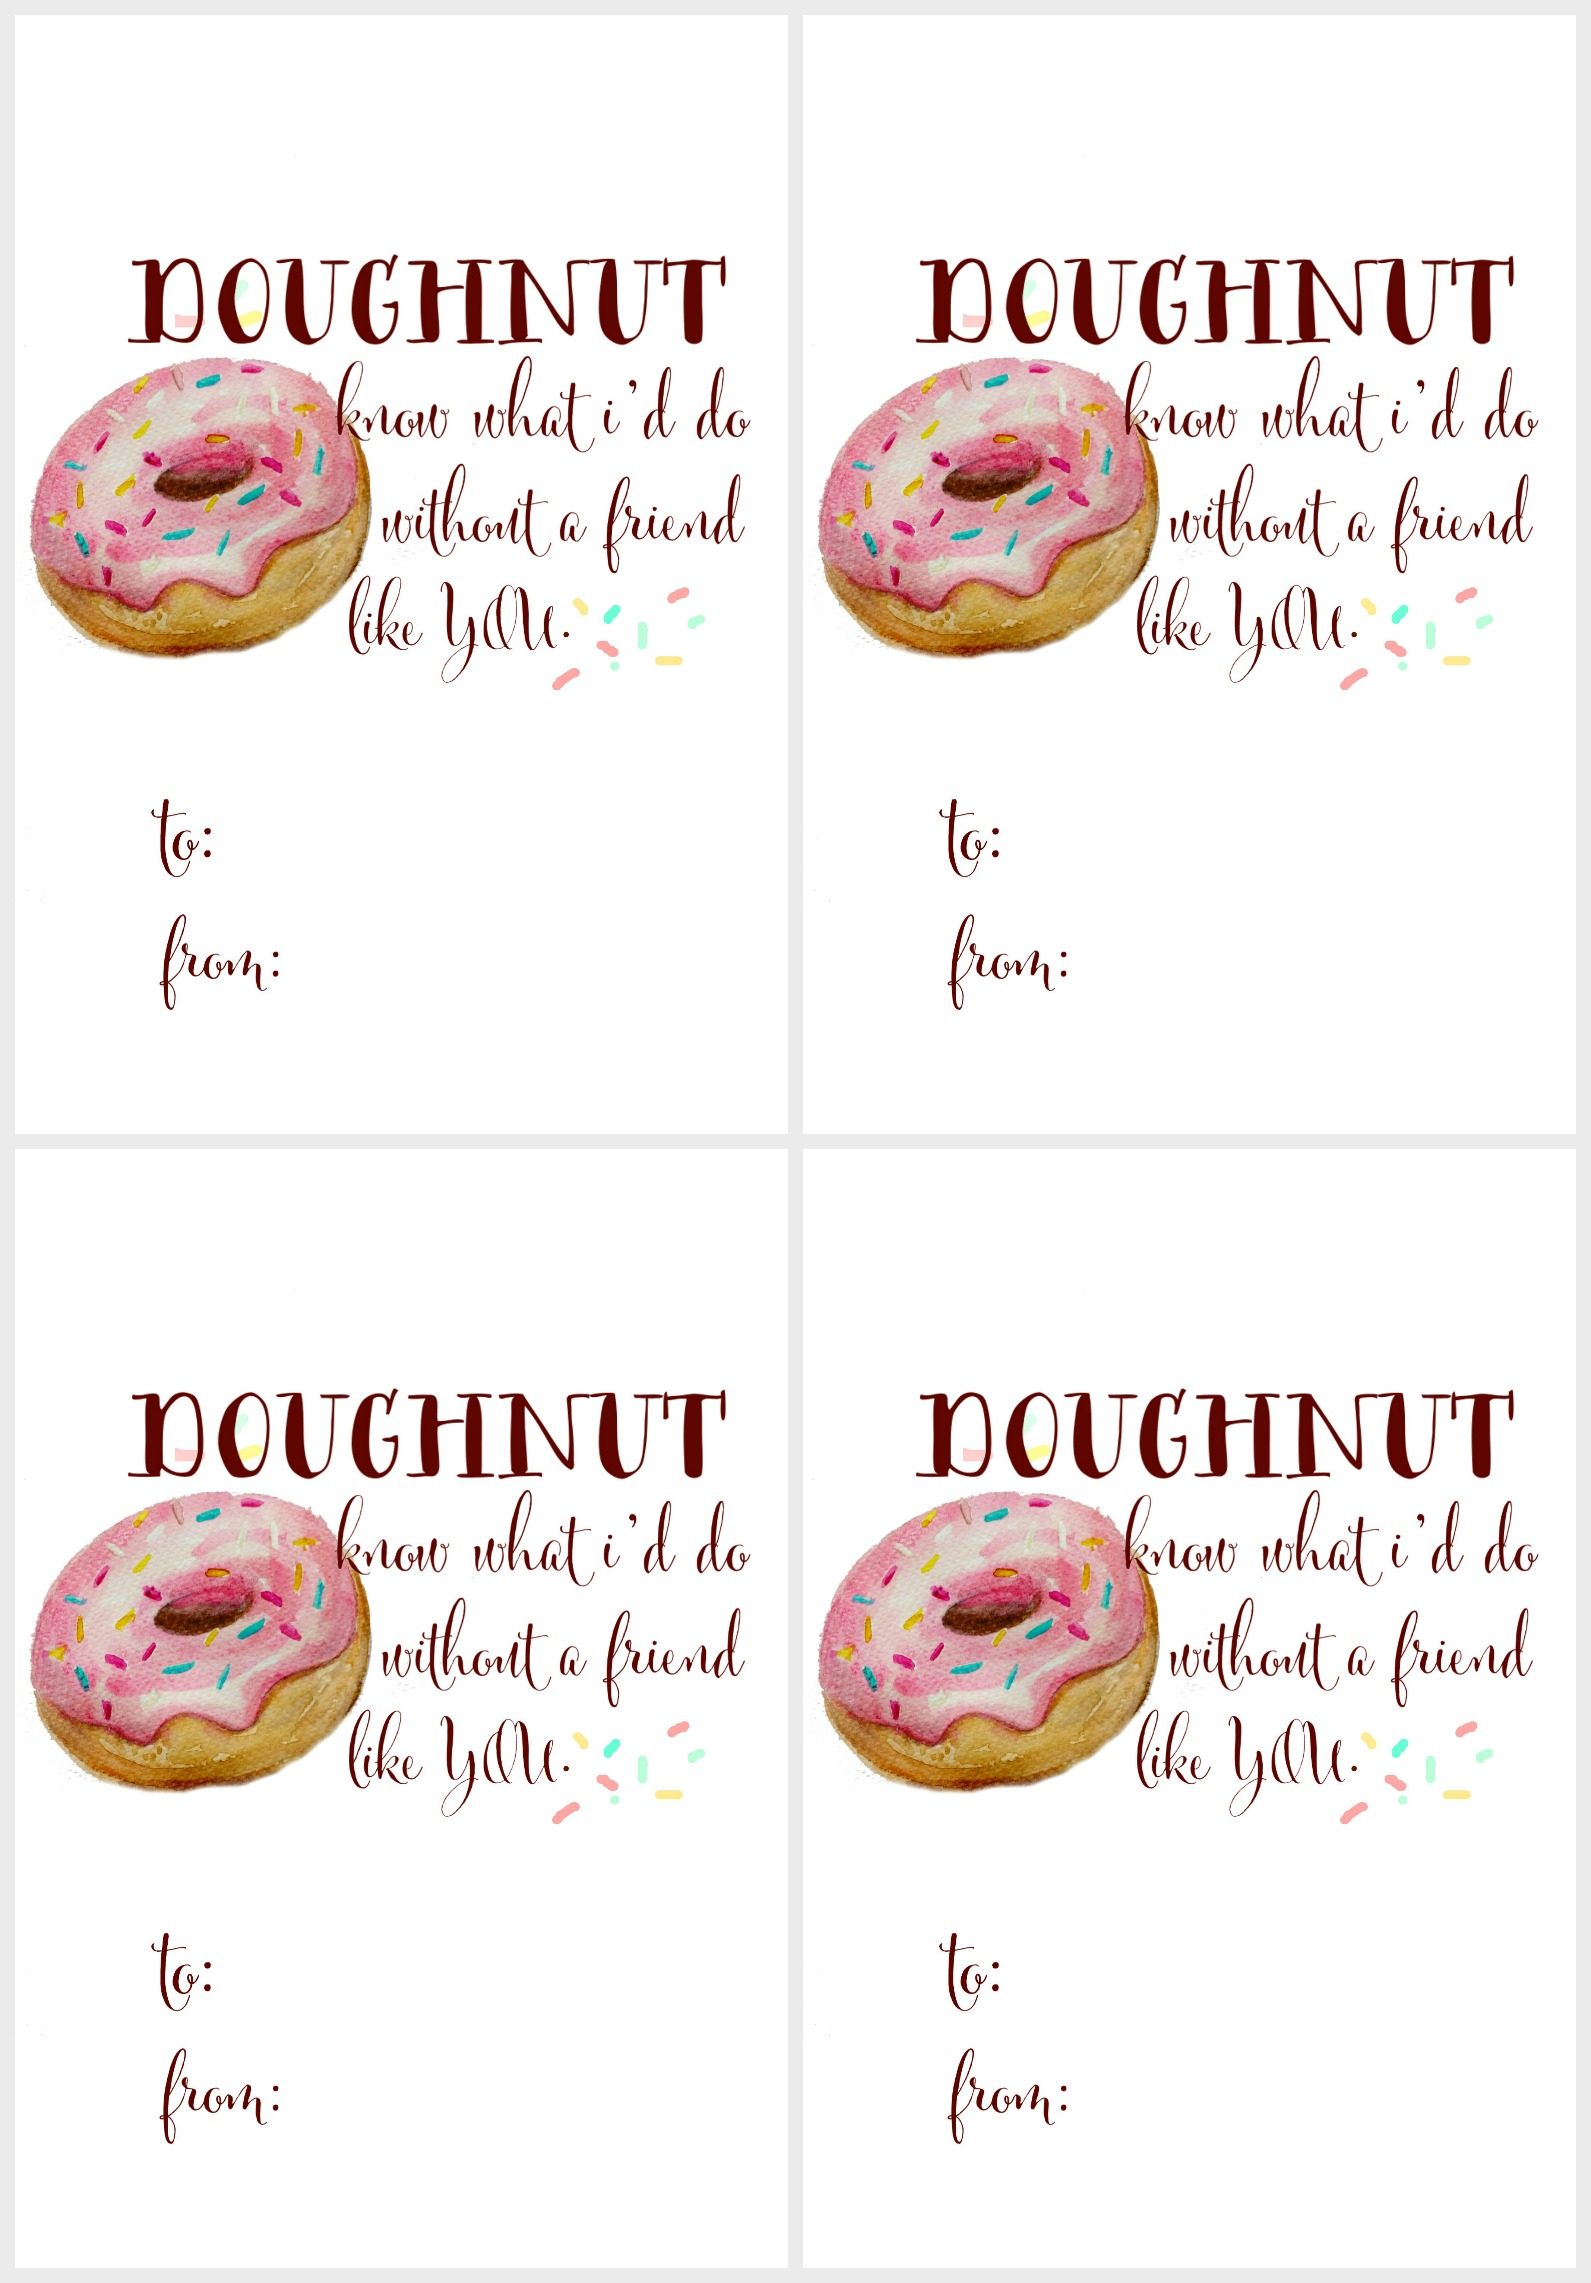 doughnuttagscollagecraftberrybush